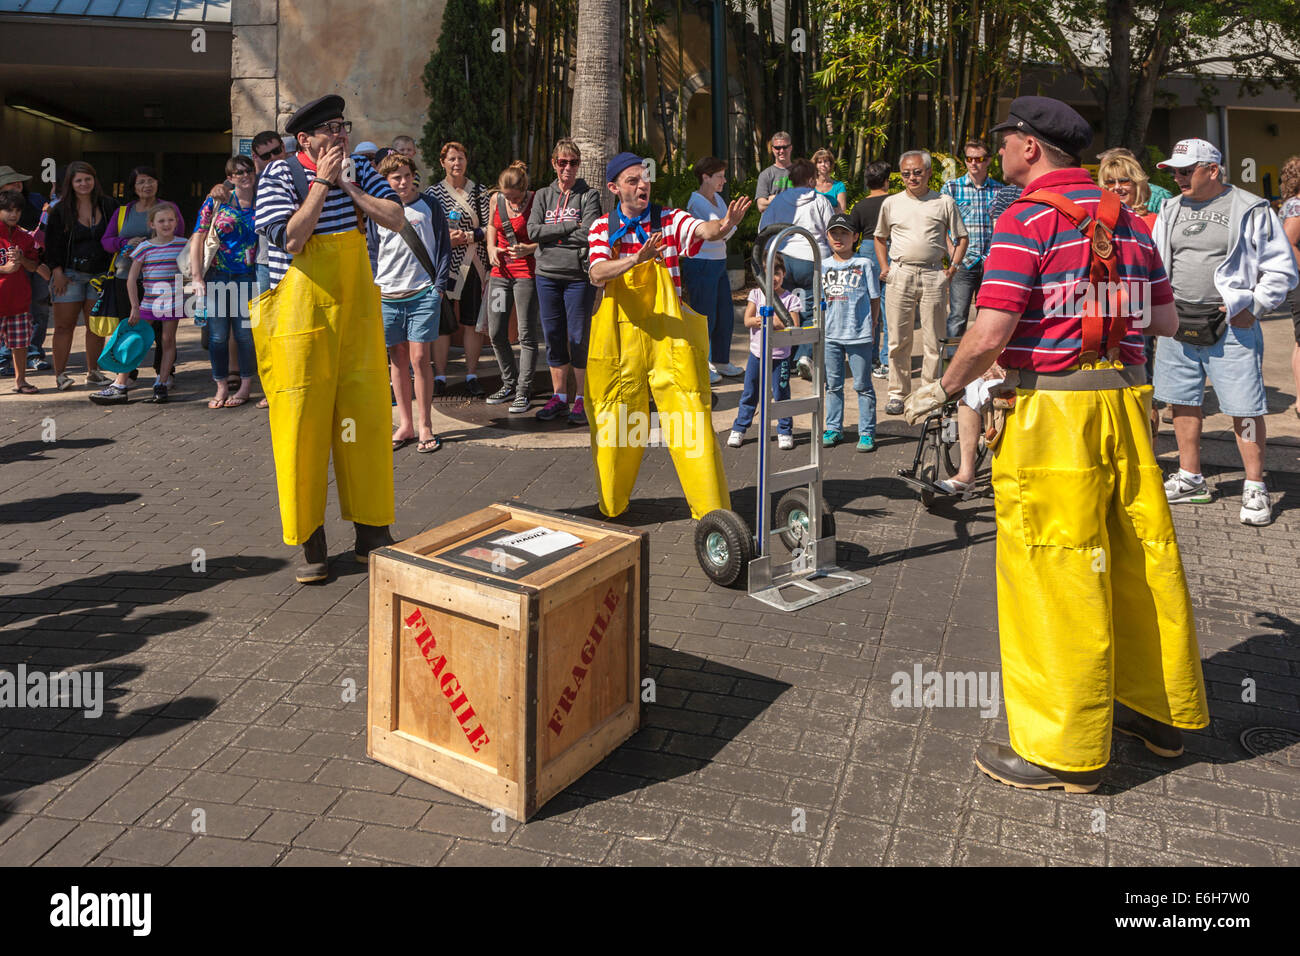 Street performers doing comedy act on streets at Sea World theme park in Orlando, Florida - Stock Image